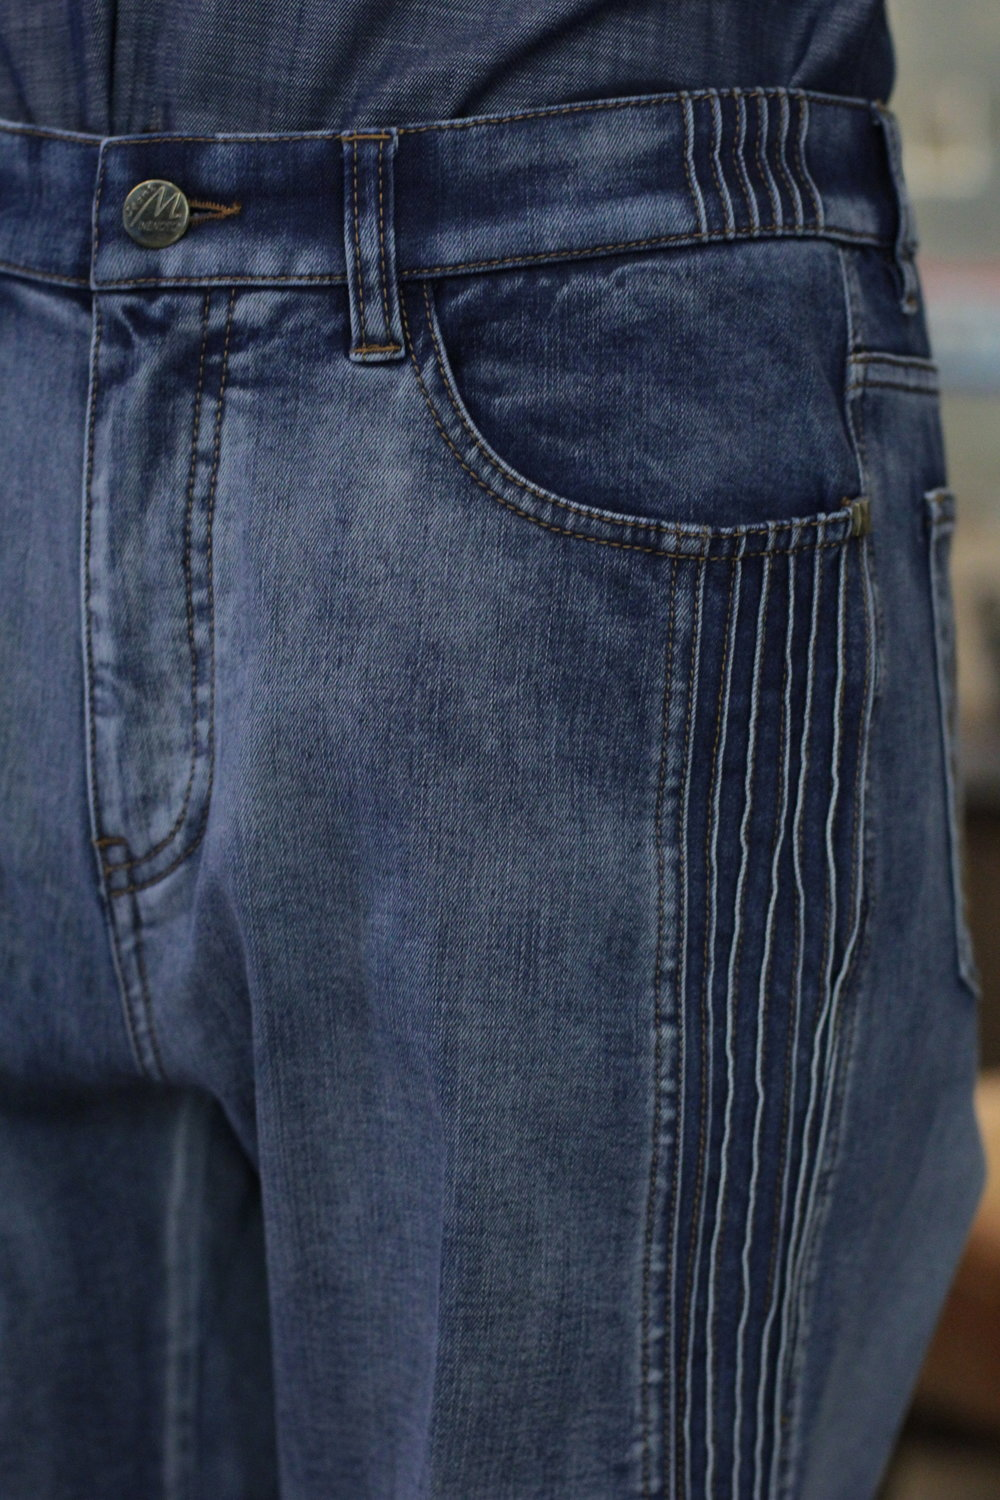 BELTLOOPS MADE DENIM